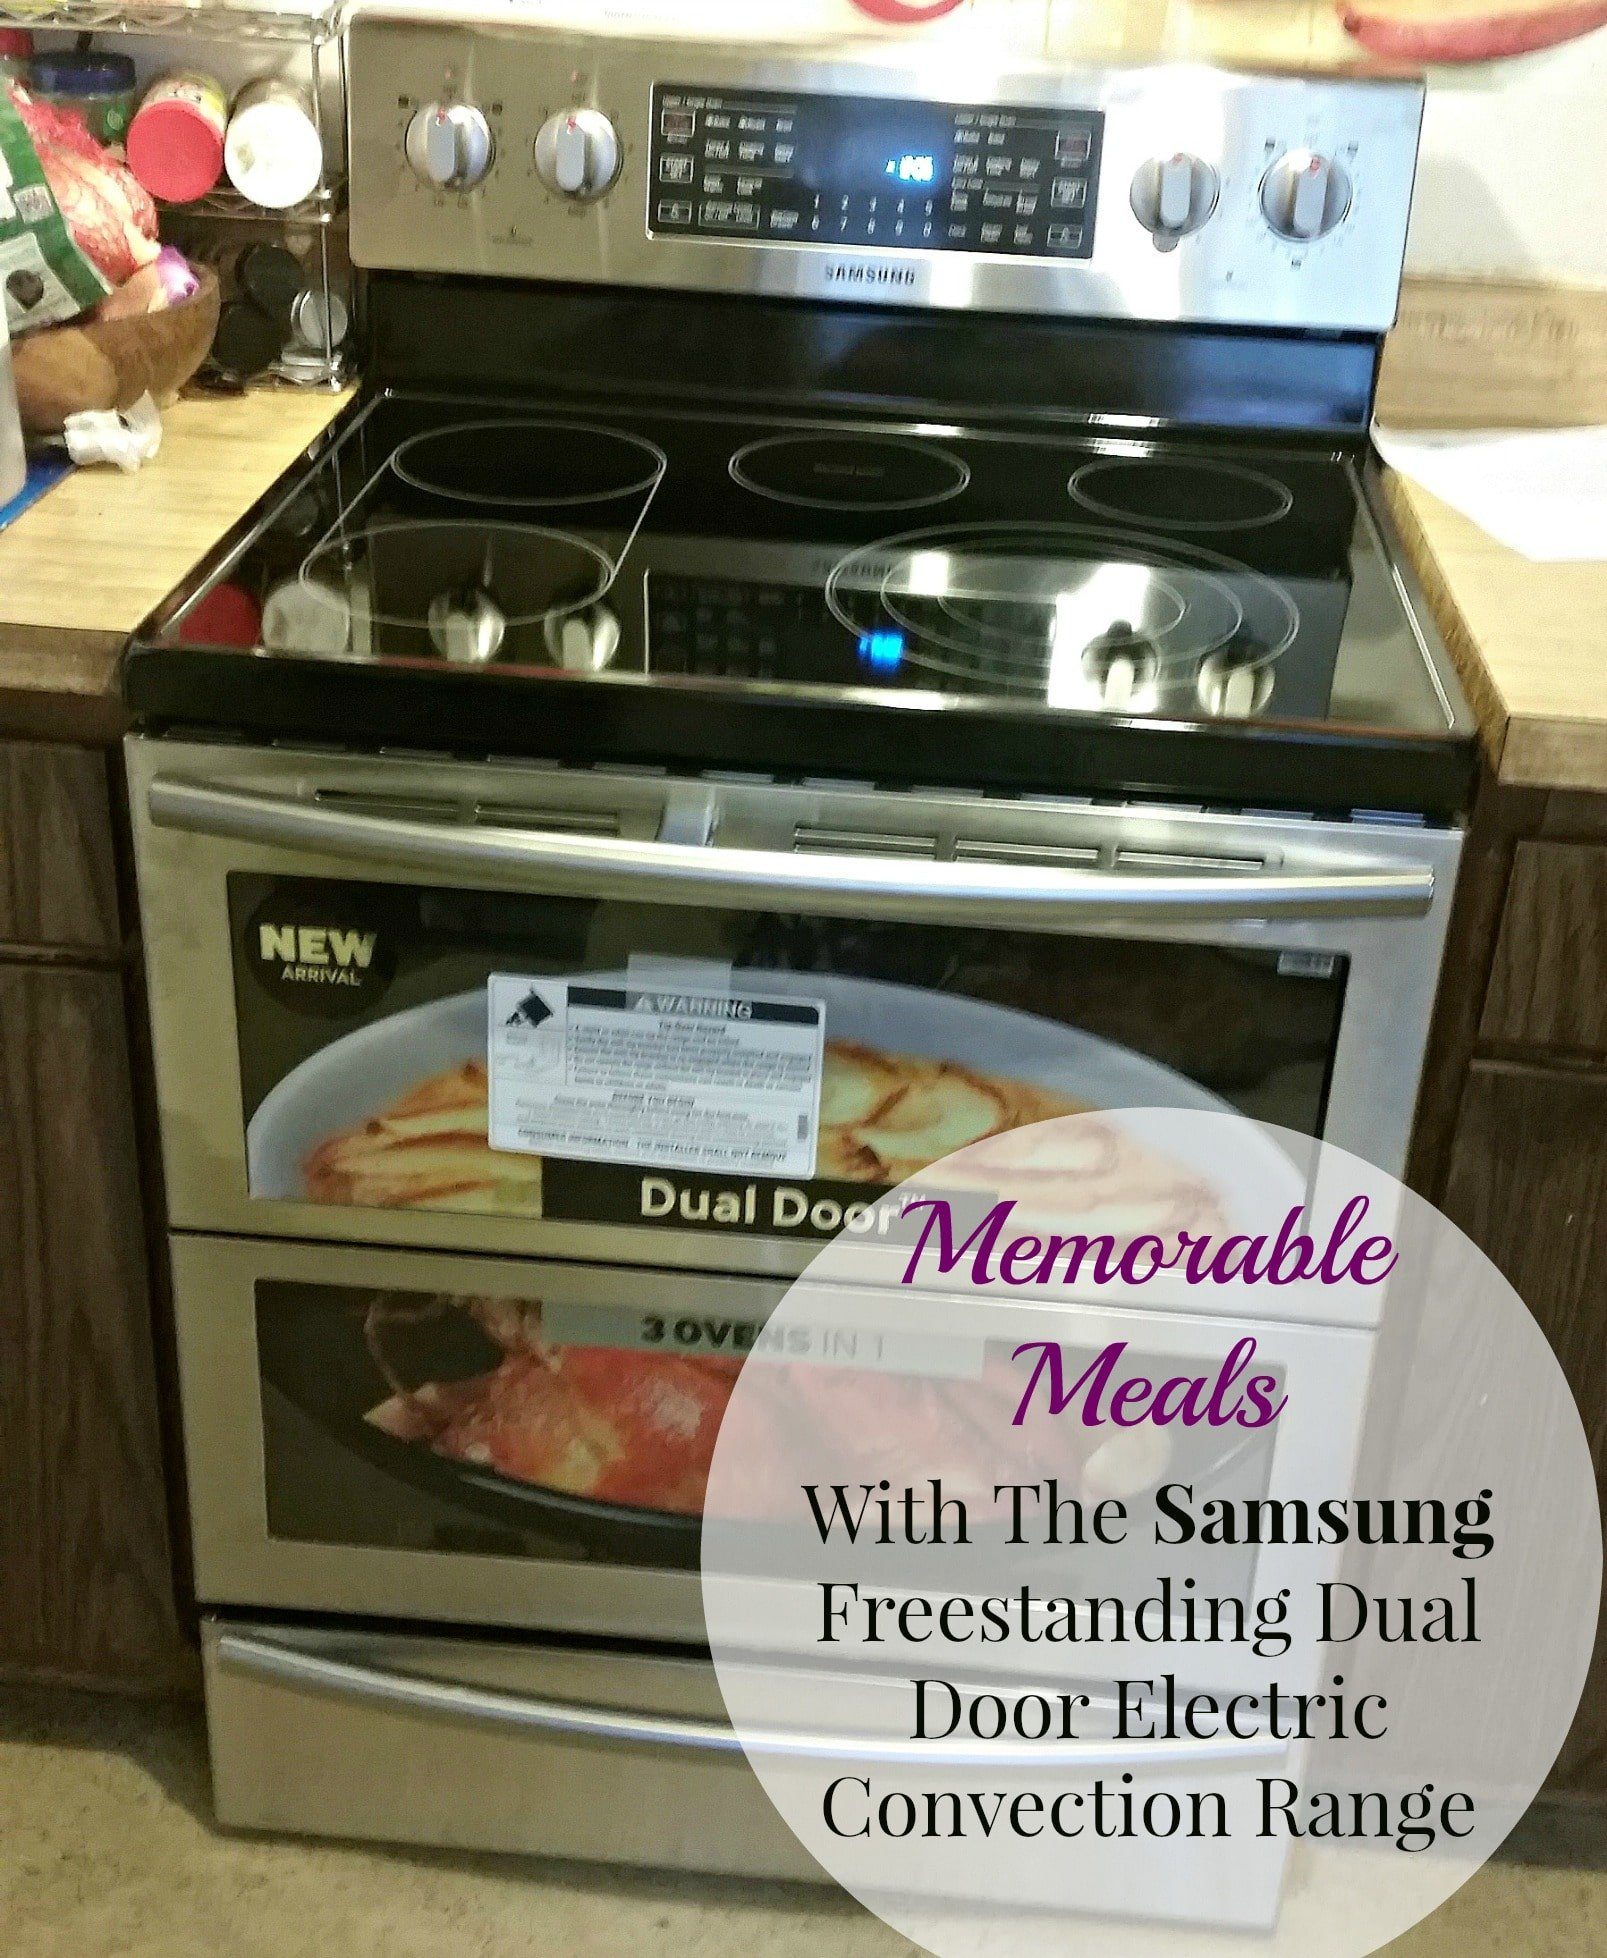 Creating Memorable Meals With The Samsung Freestanding Dual Door Electric Convection Range